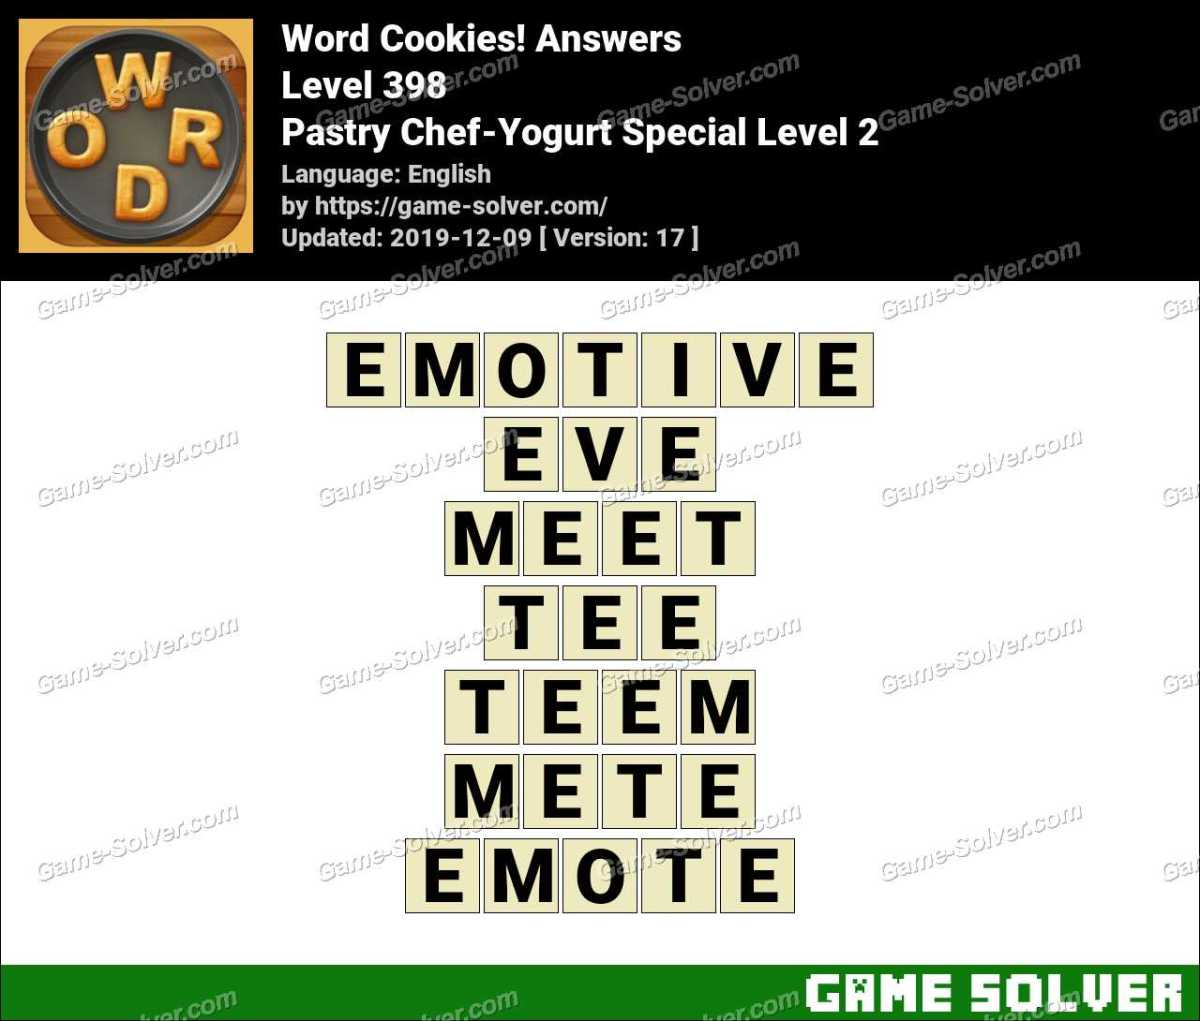 Word Cookies Pastry Chef-Yogurt Special Level 2 Answers